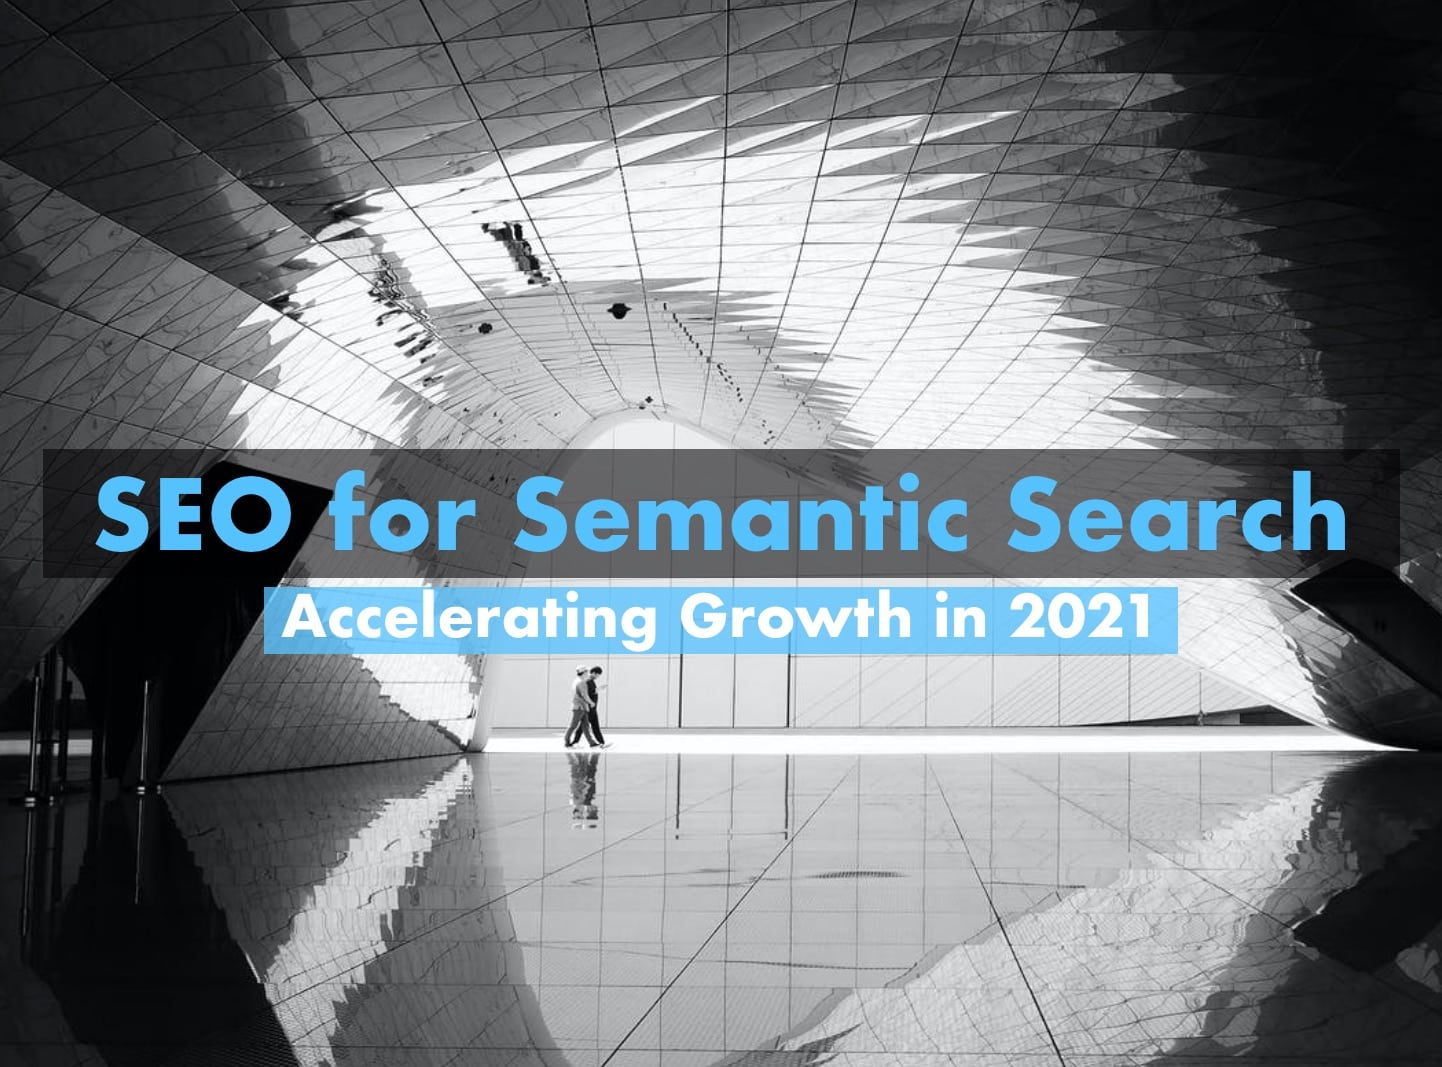 SEO for Semantic Search